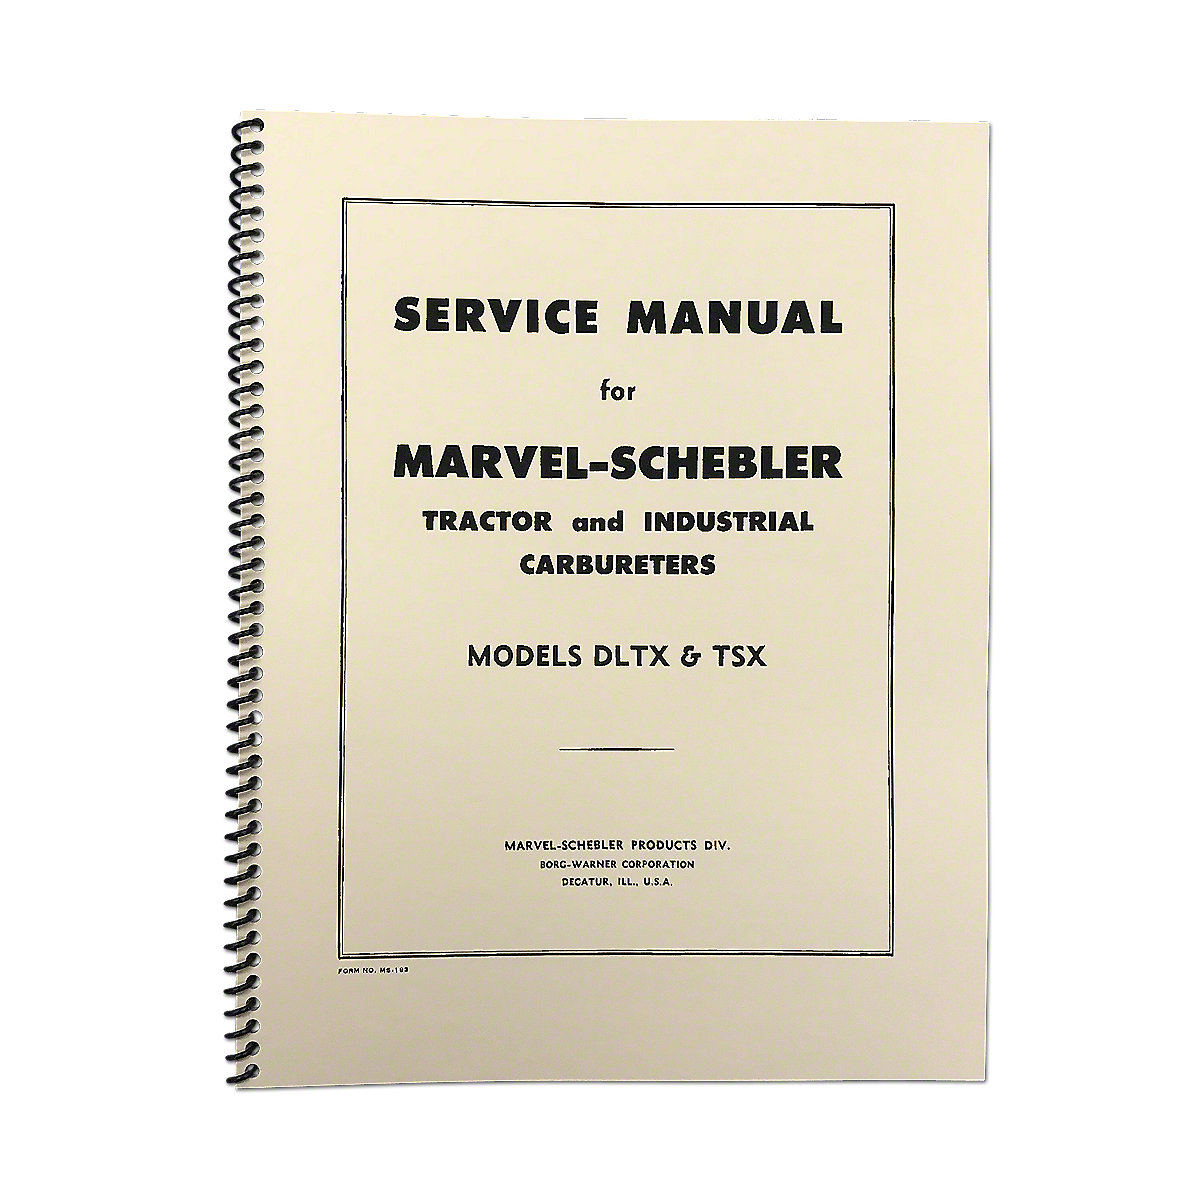 REP4082 Marvel Schebler TSX & DLTX Carburetor Service Manual Reprint